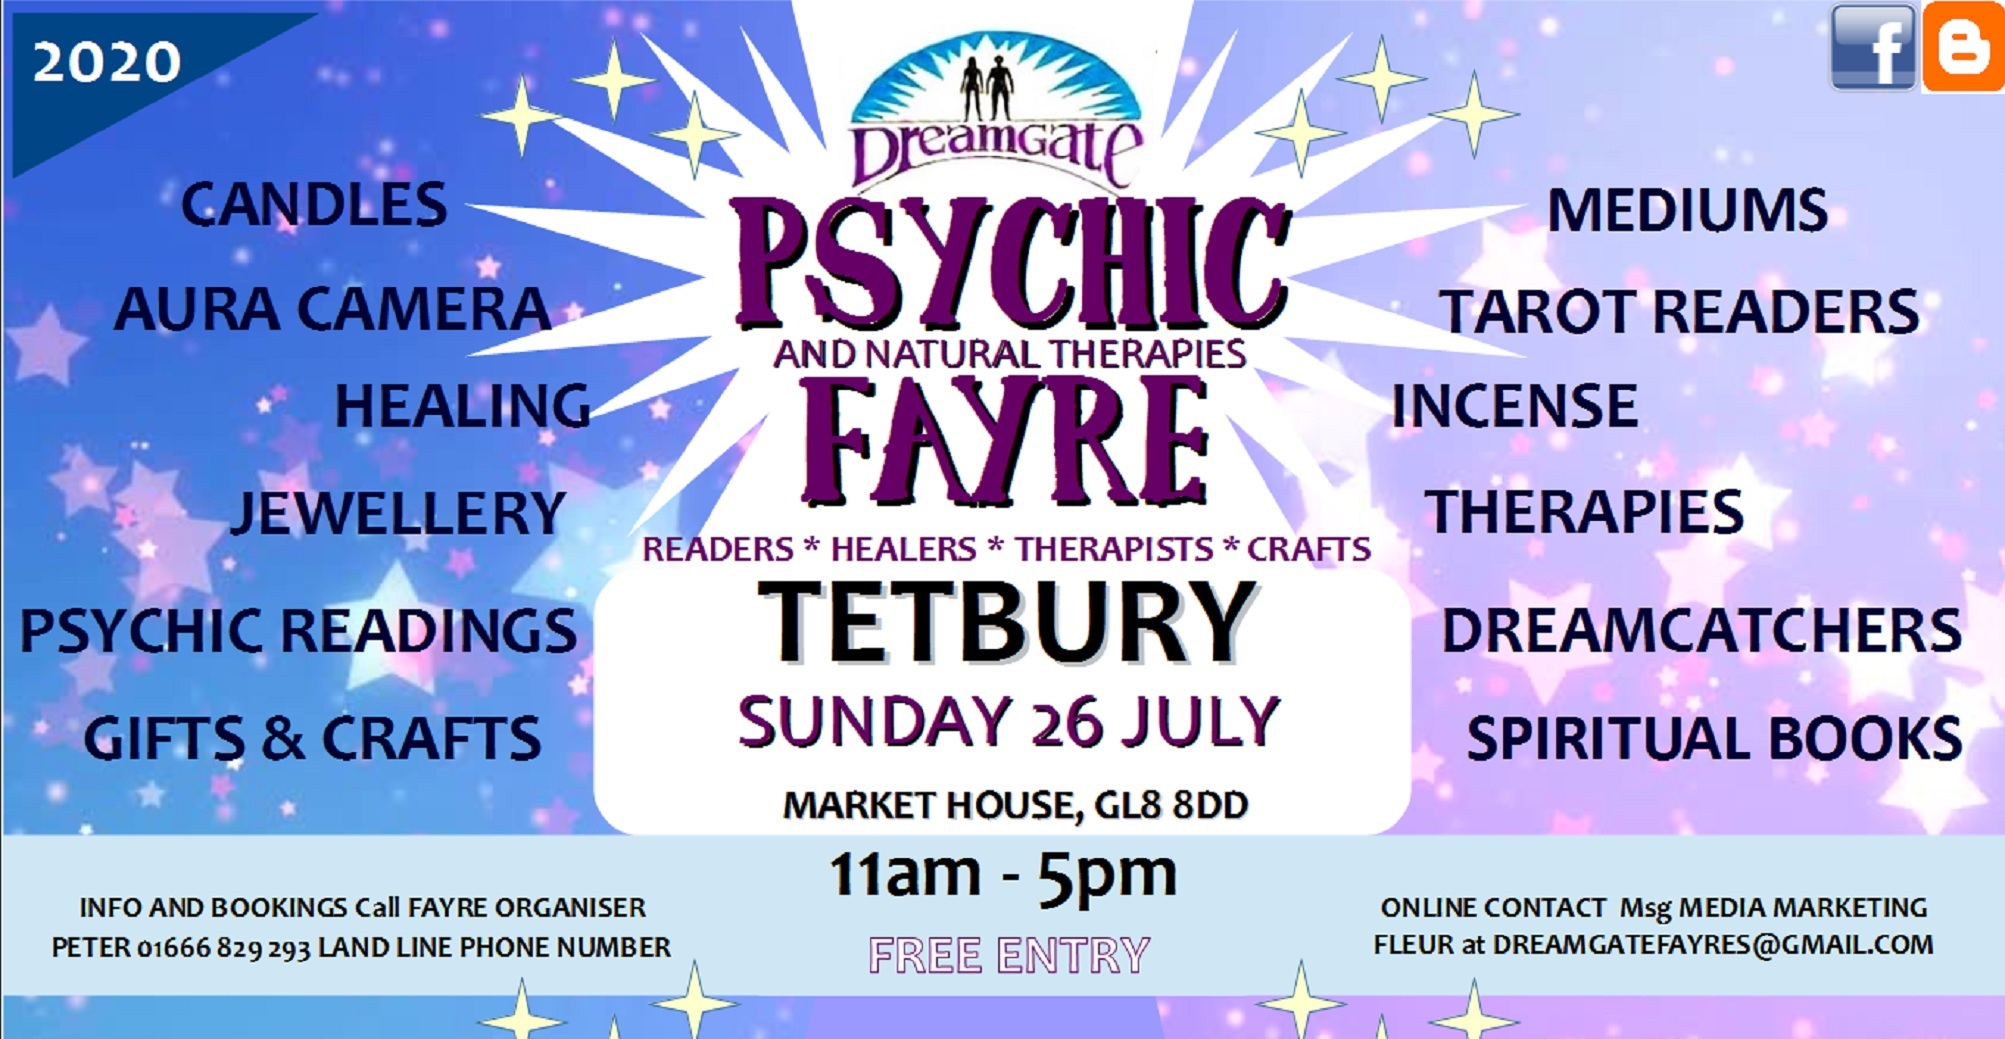 DreamGate Psychic Fayre Tetbury Sunday 26 July 20202